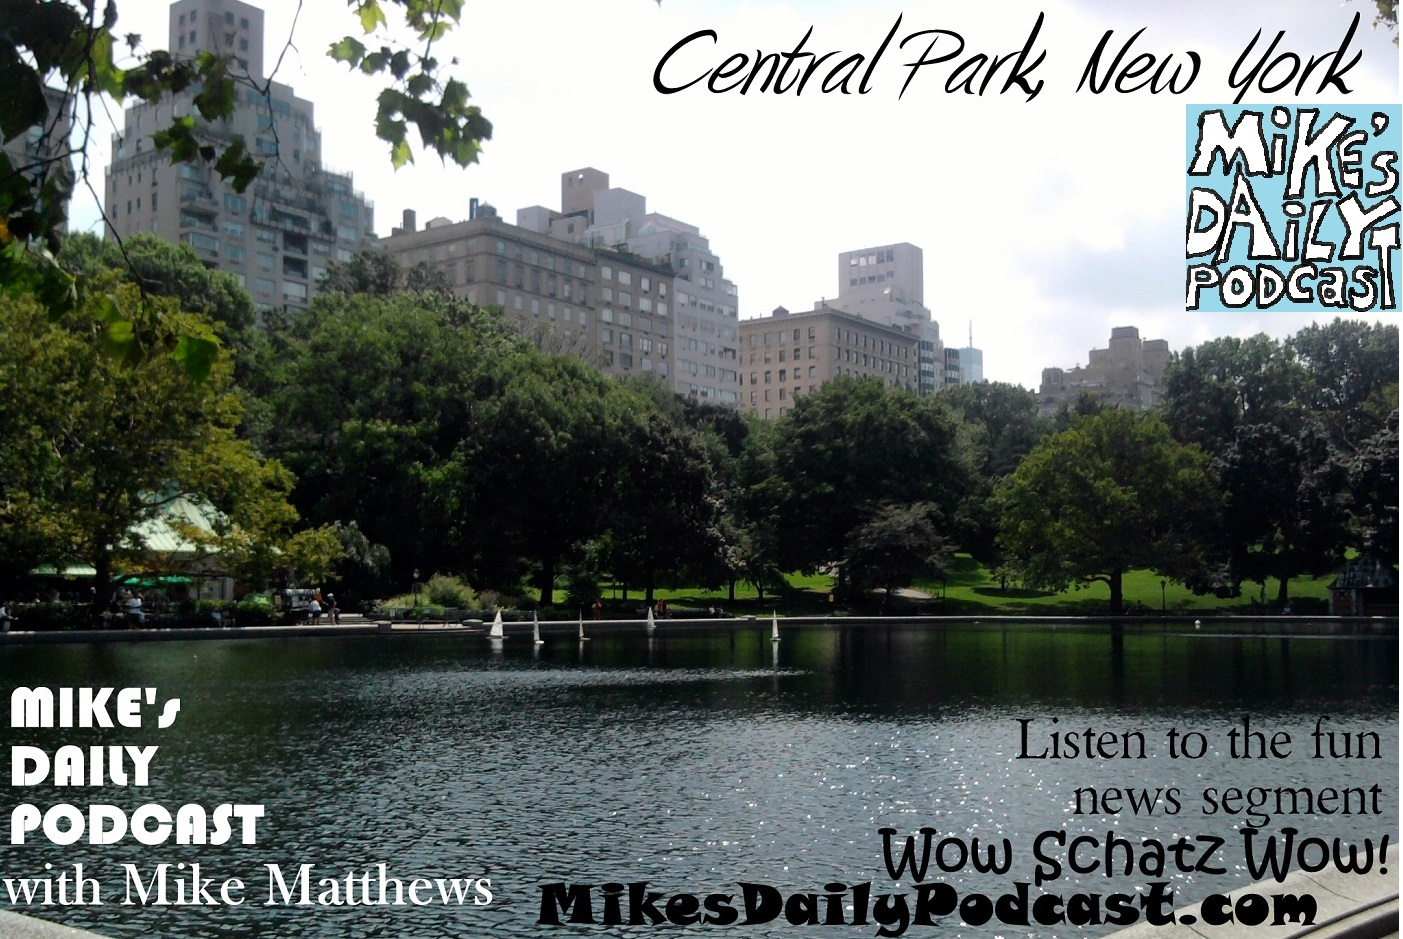 MIKEs DAILY PODCAST 943 Central Park New York